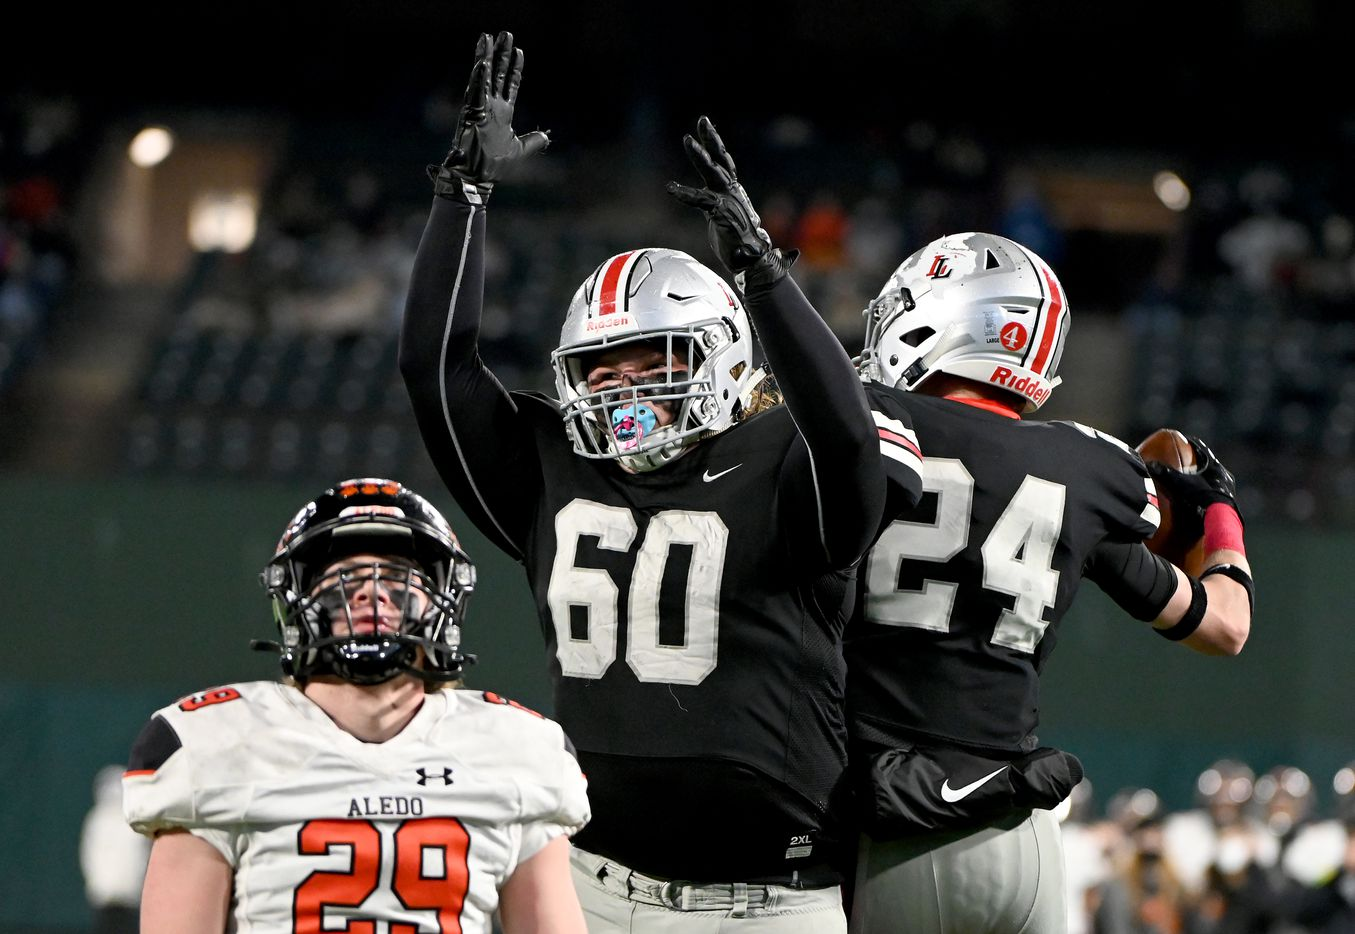 Lovejouy's Trent Robinson (60) celebrates with Trent Rucker (24) after Rucker's touchdown catch in the second quarter of the Class 5A Division II Region II final high school football game between Aledo and Lovejoy, Friday, Jan. 1, 2021, in Arlington, Texas. (Matt Strasen/Special Contributor)